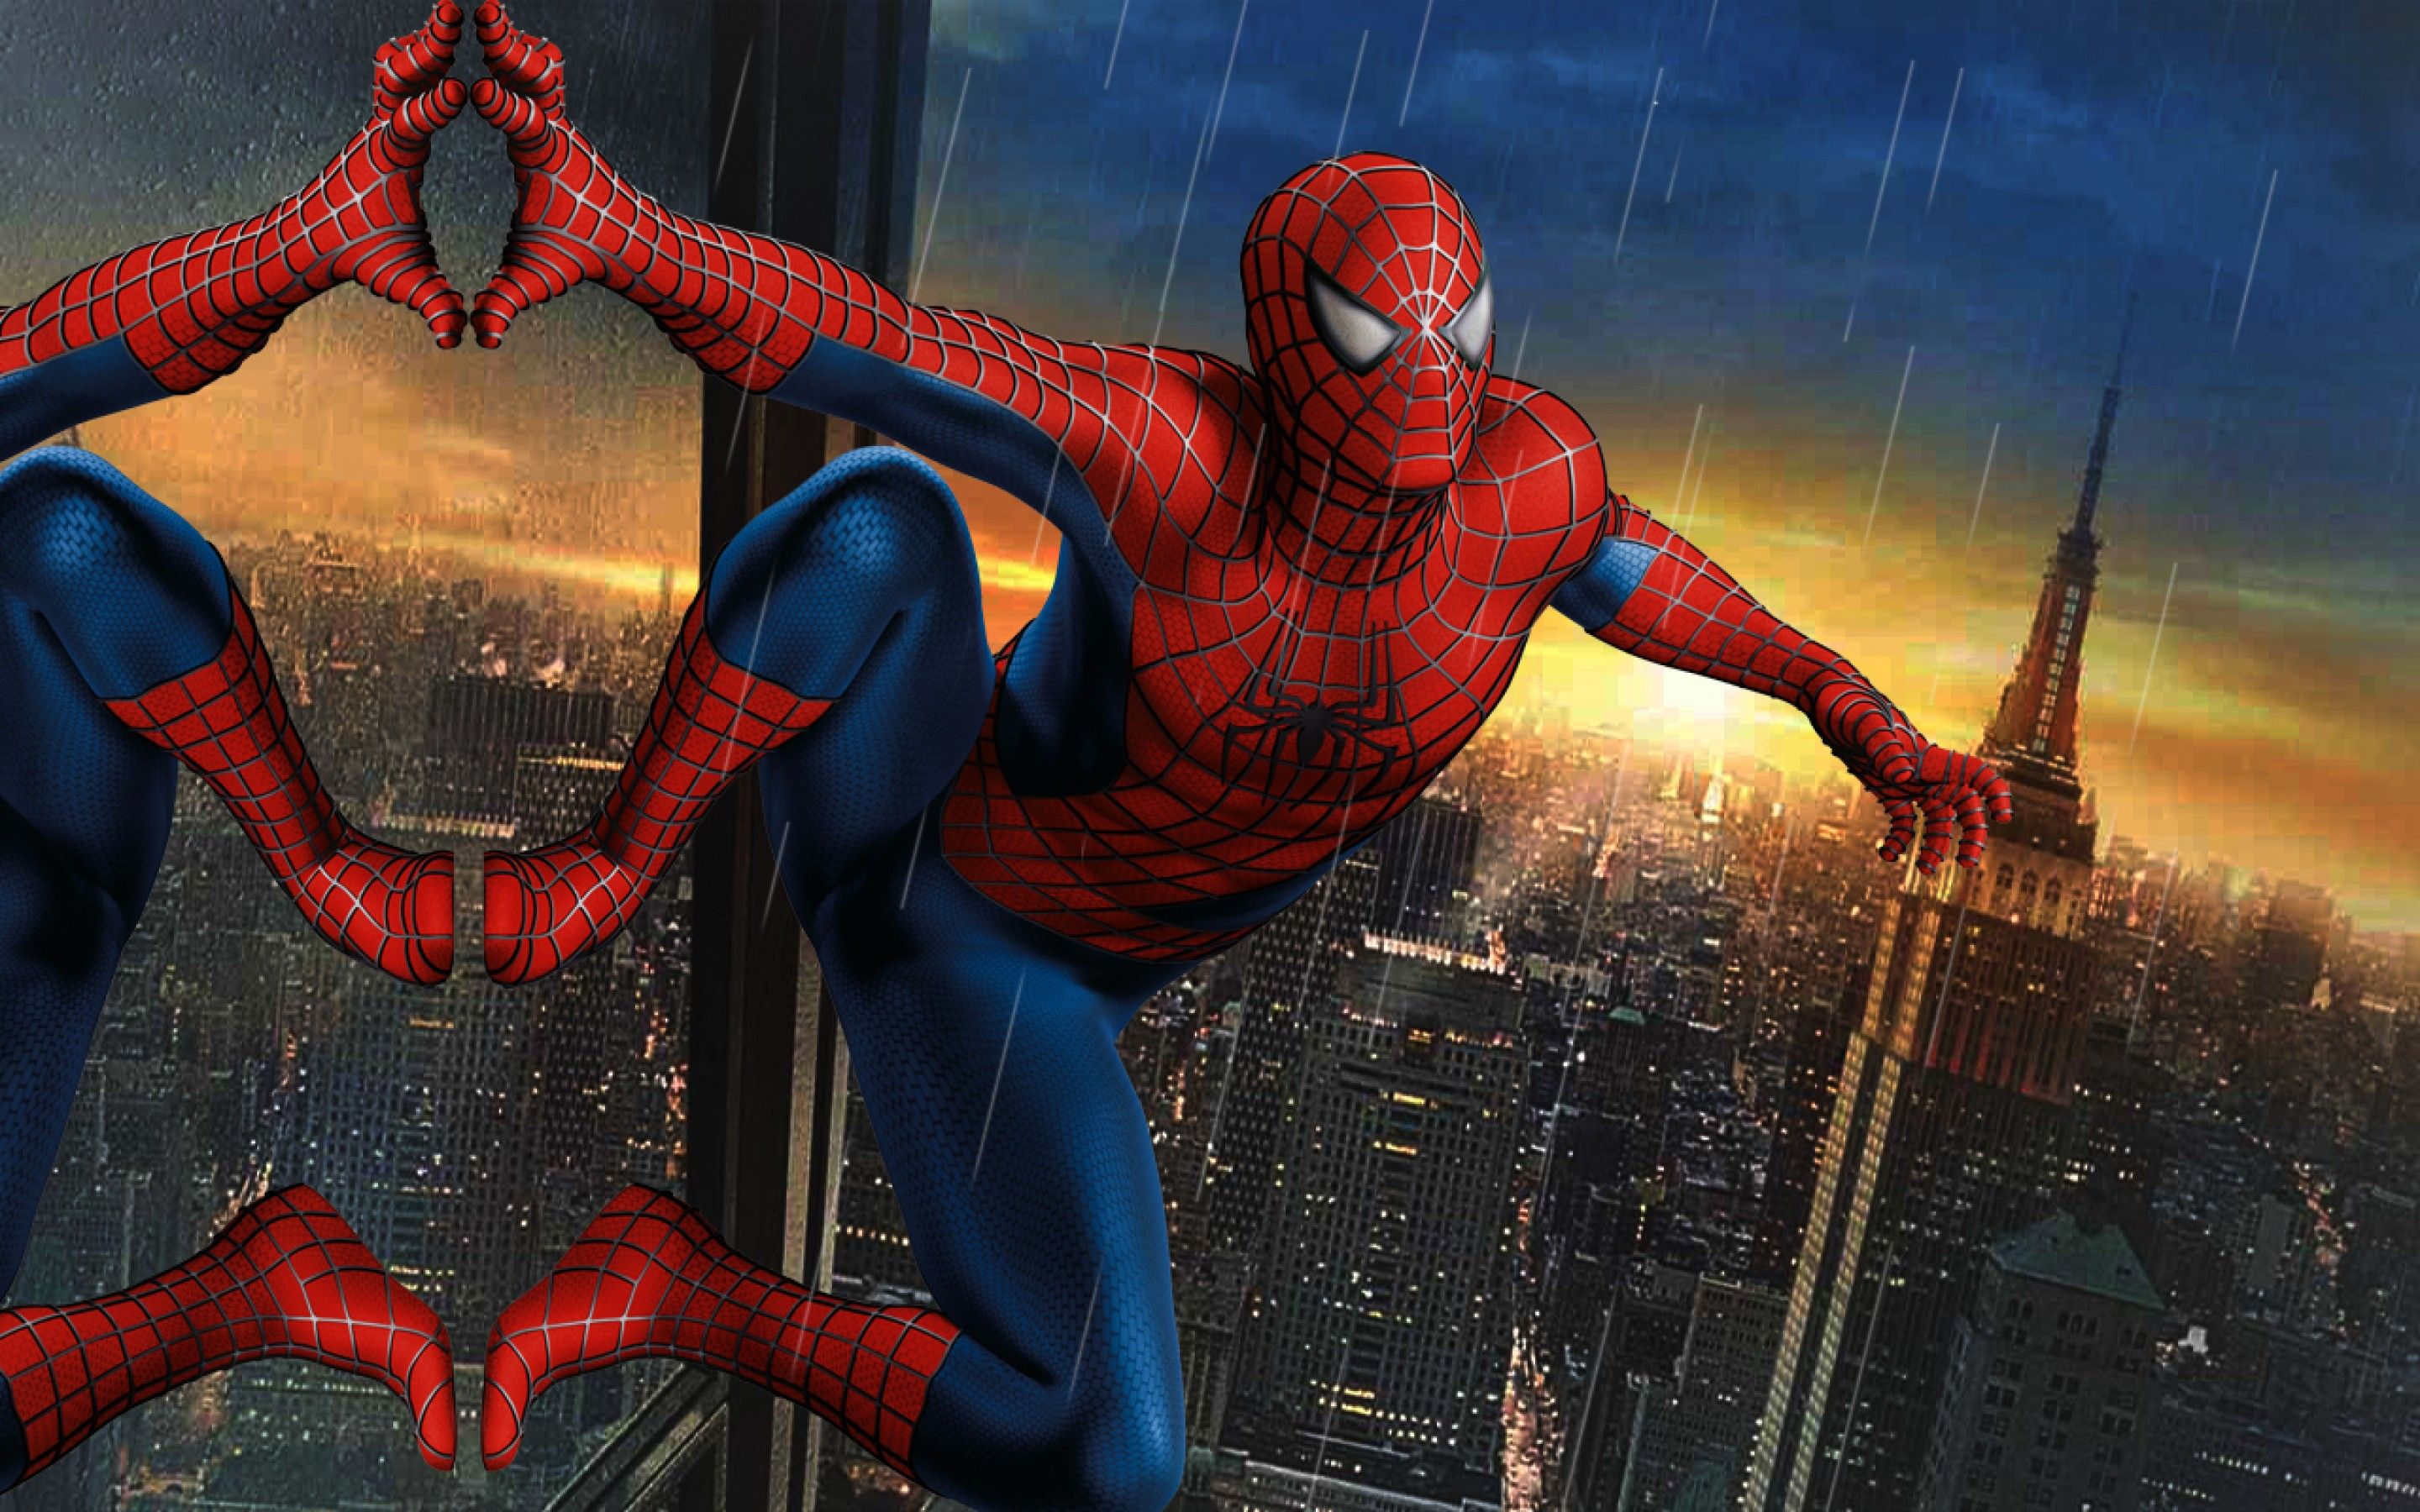 Must see Wallpaper High Resolution Spiderman - c85bf3867ef6ab3440b56b8bde150673  2018_1653.jpg